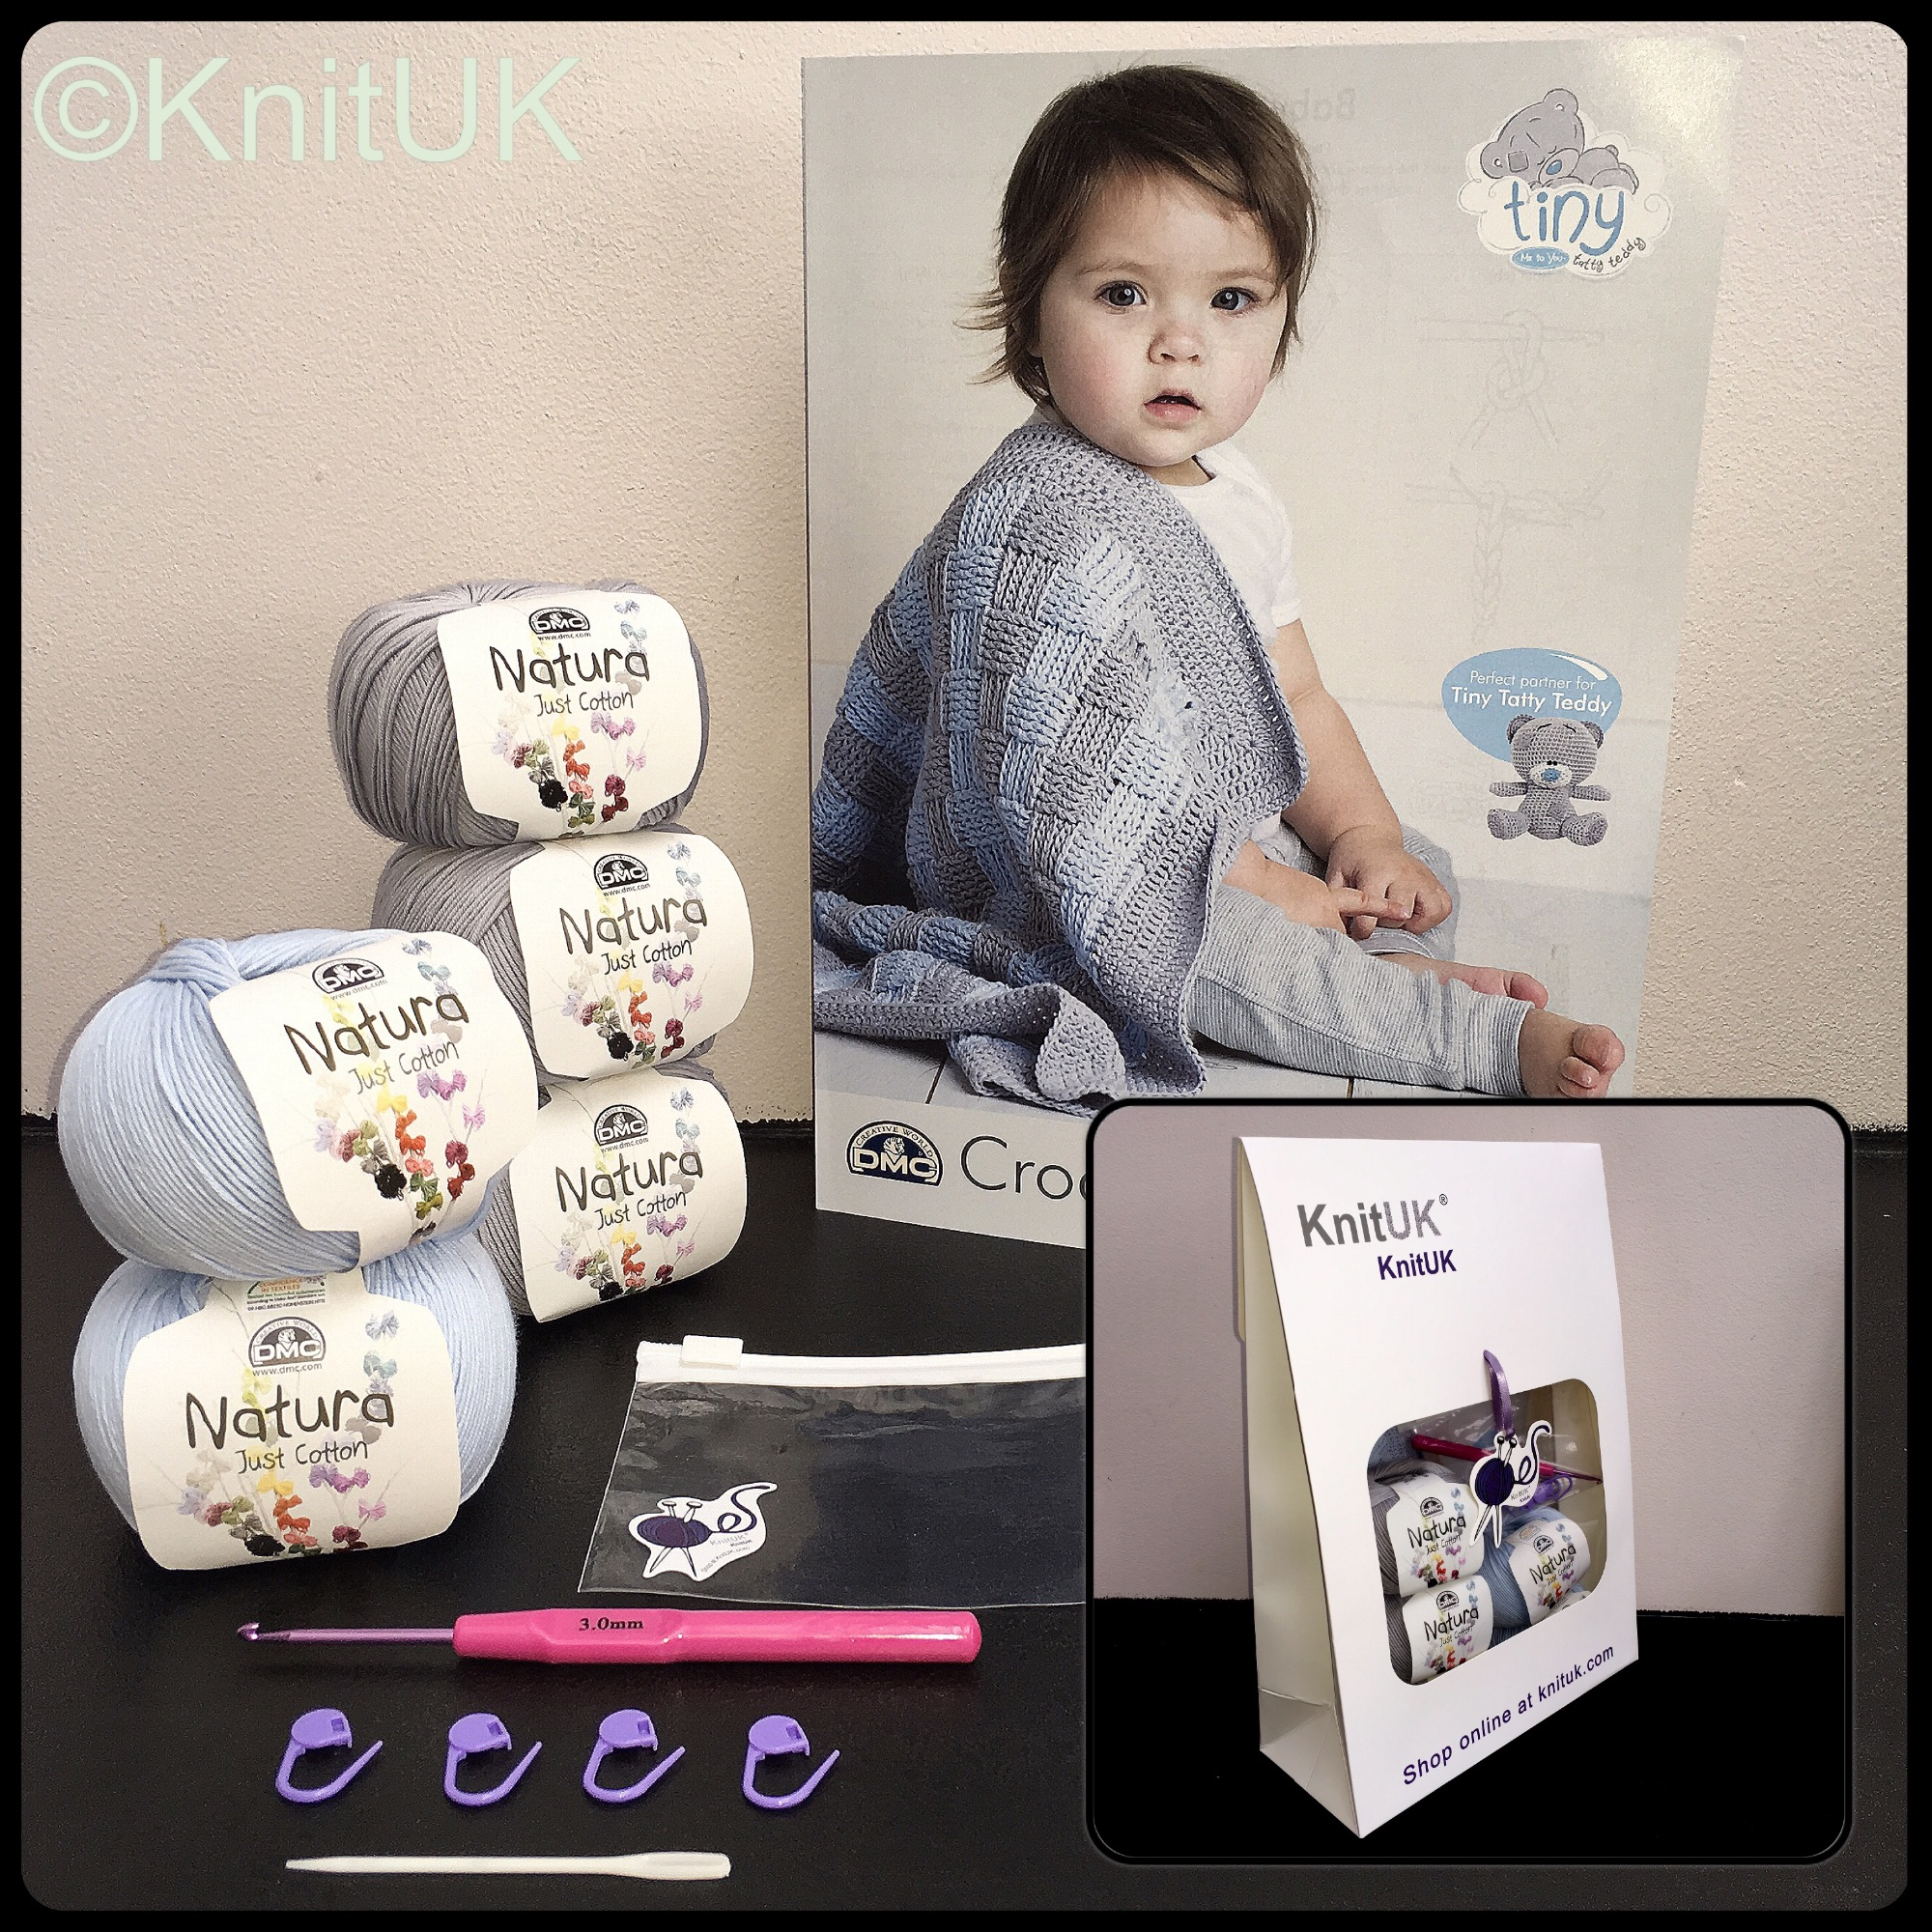 Dmc baby blanket kit contents and small knituk box with natura just cotton